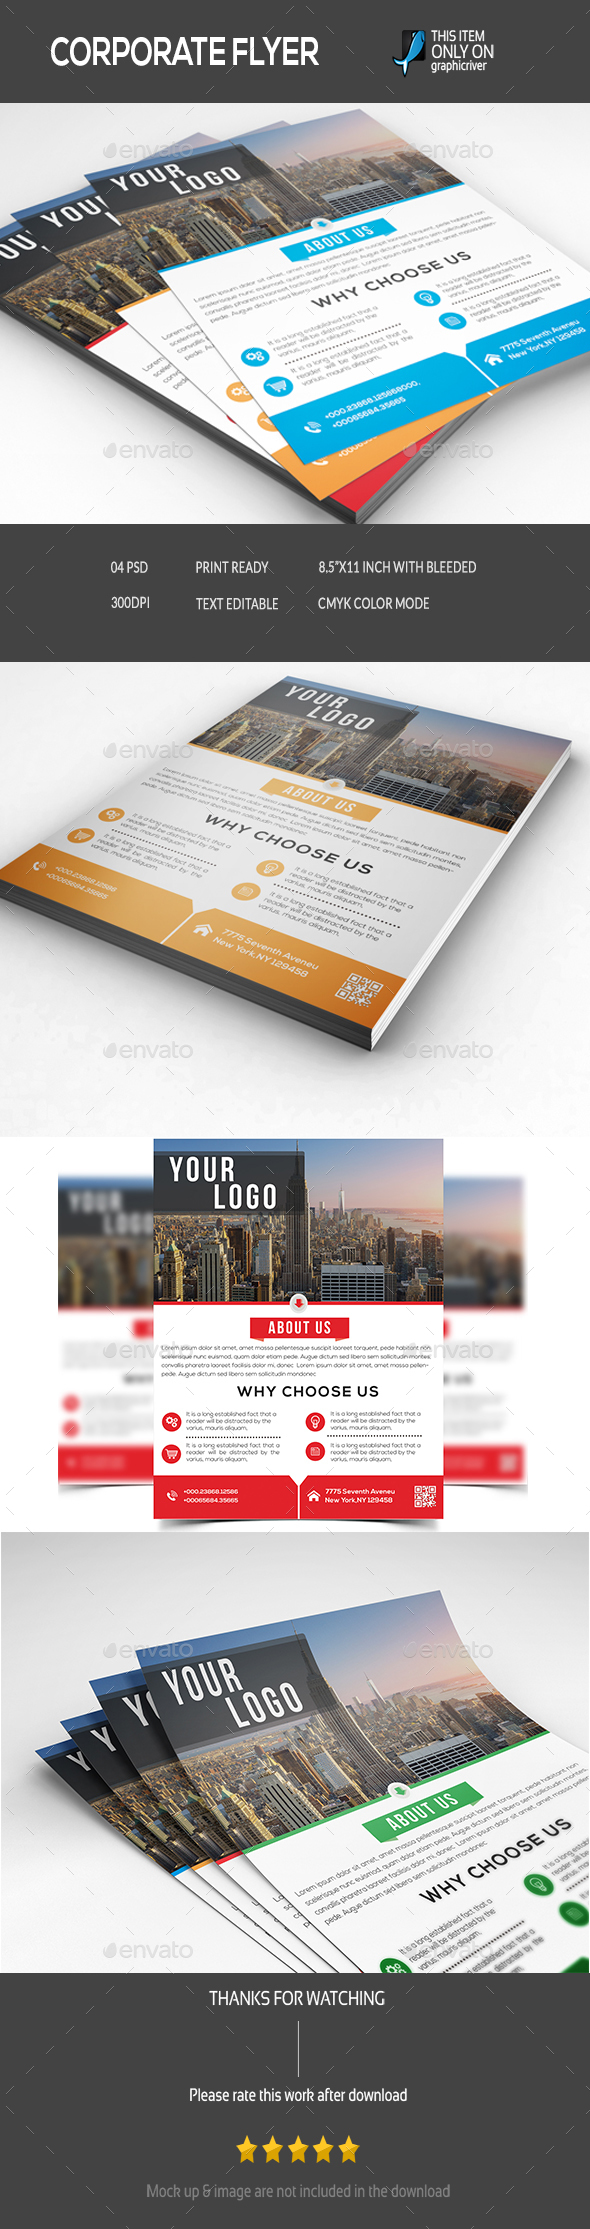 Corporate Flyer - Flyers Print Templates